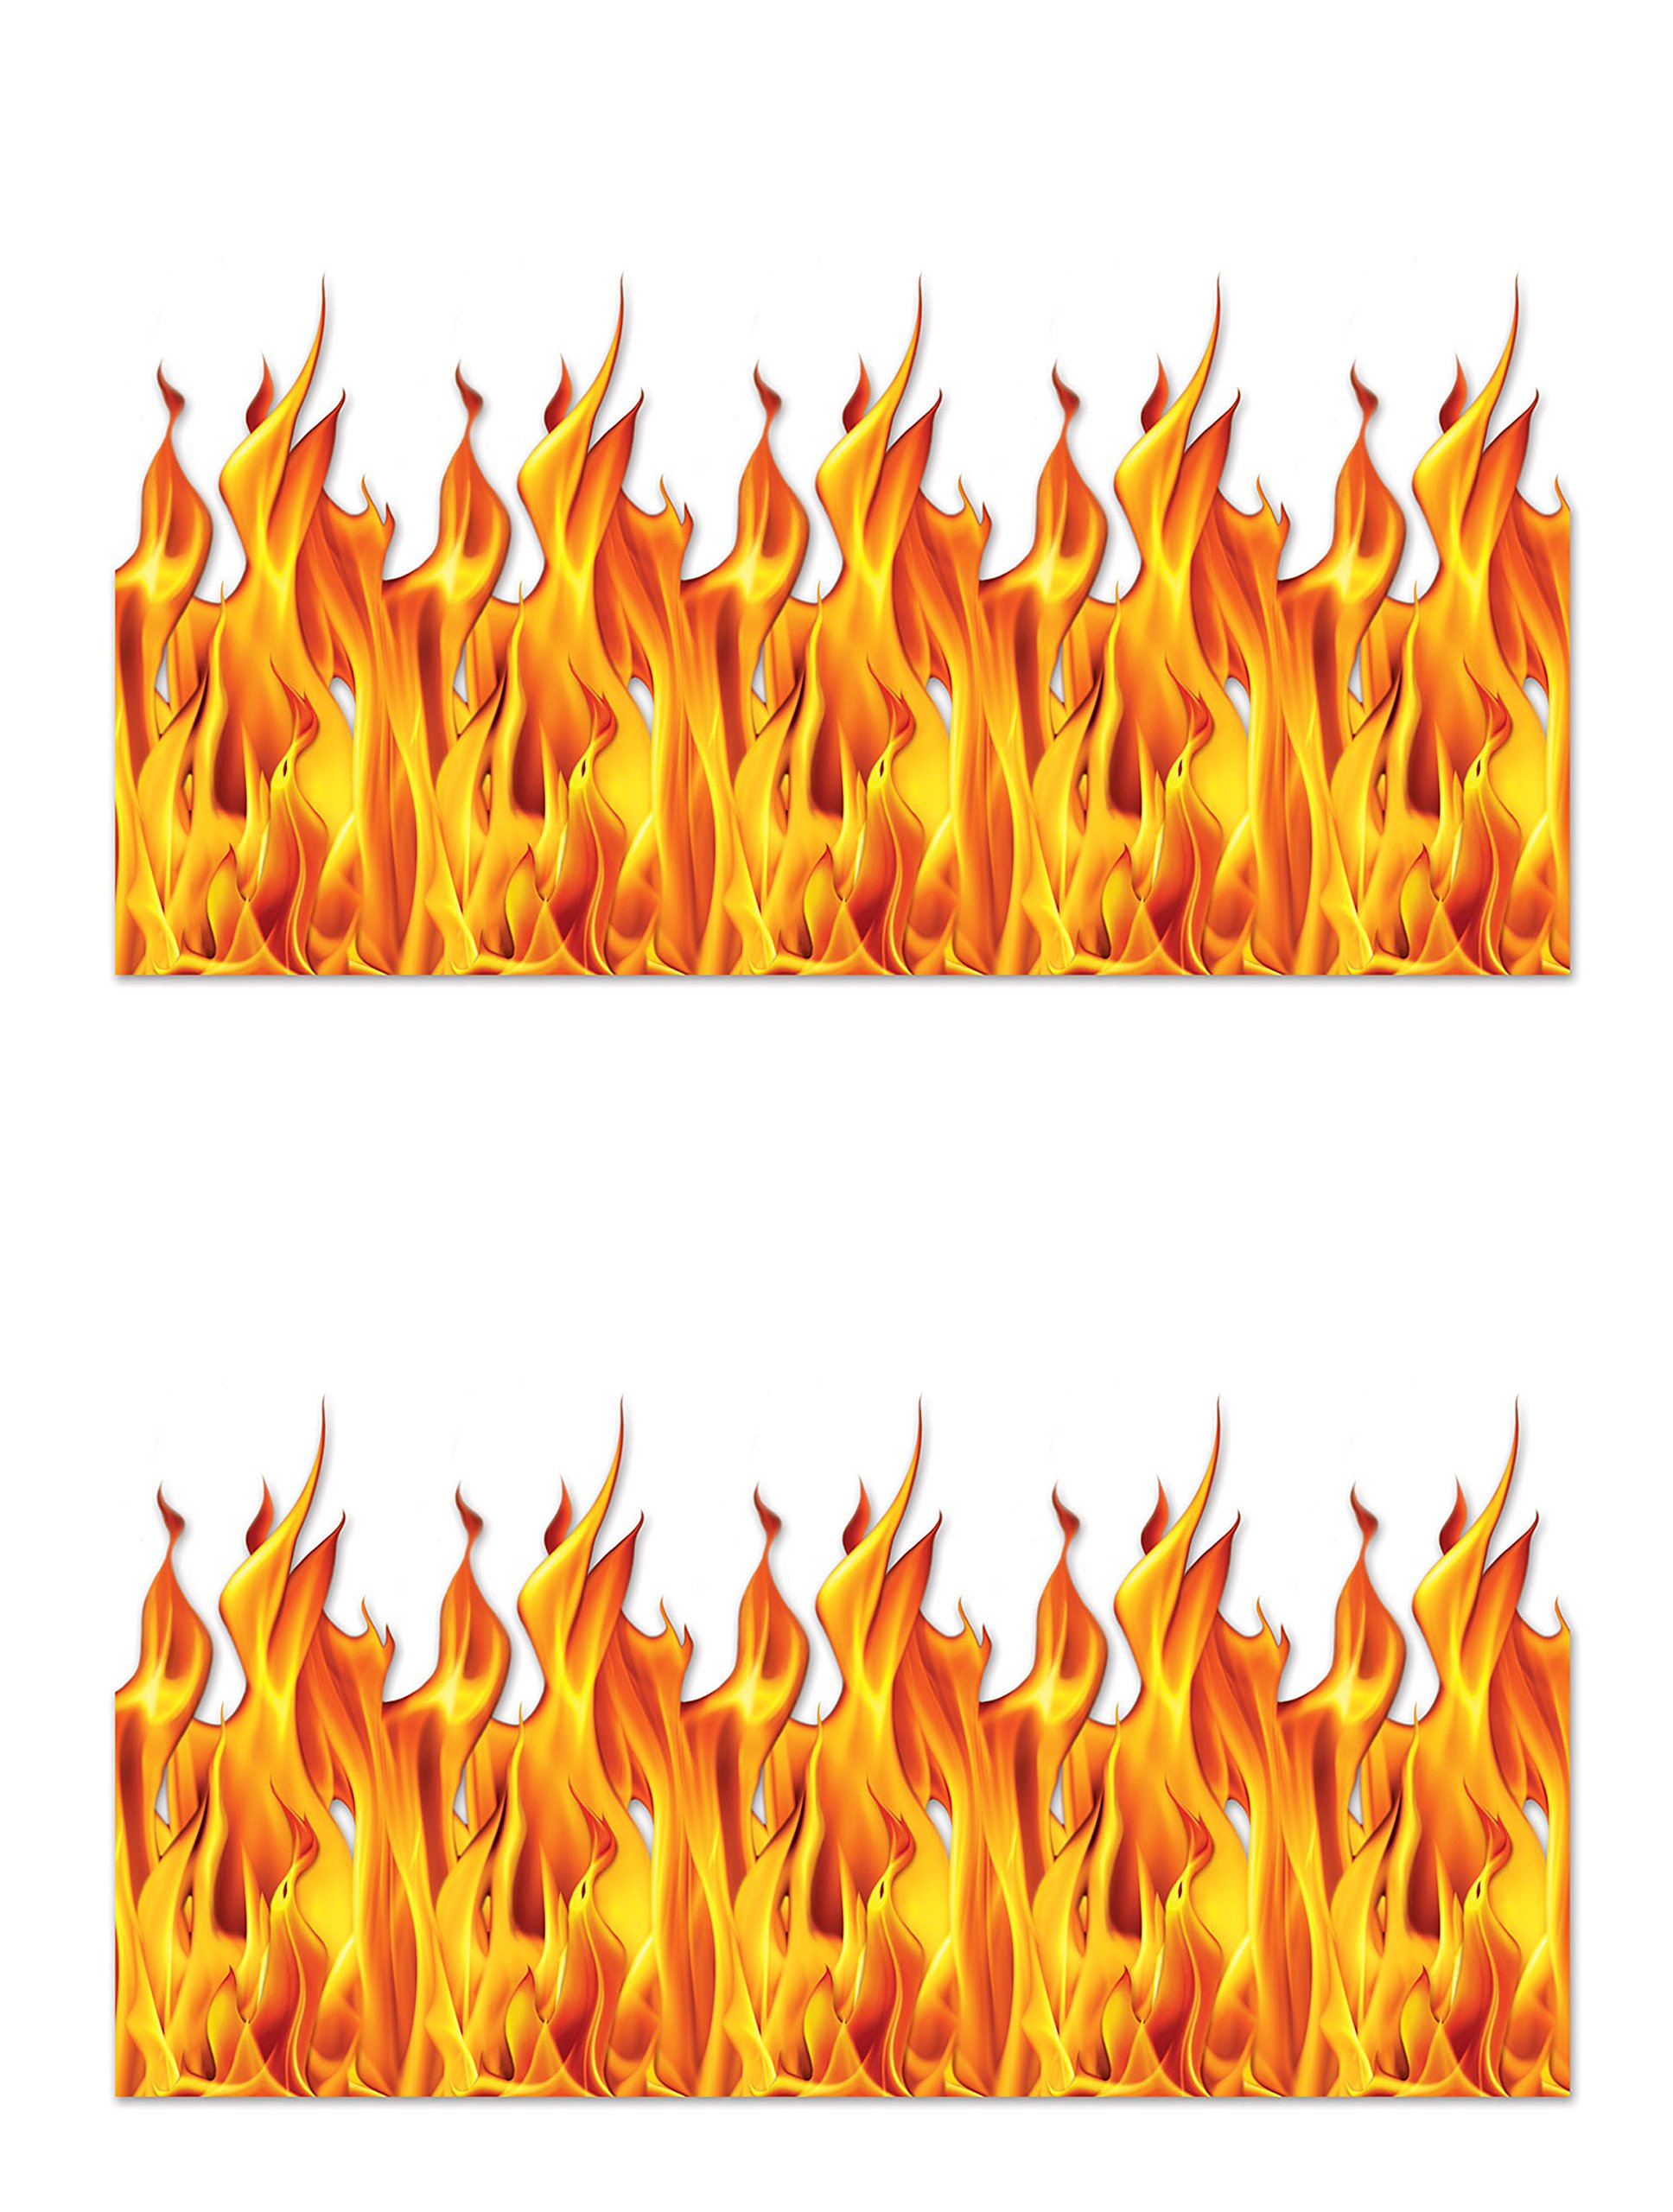 Beistle S00899AZ2 Flame Backdrop 2 Piece, Multicolored by Beistle